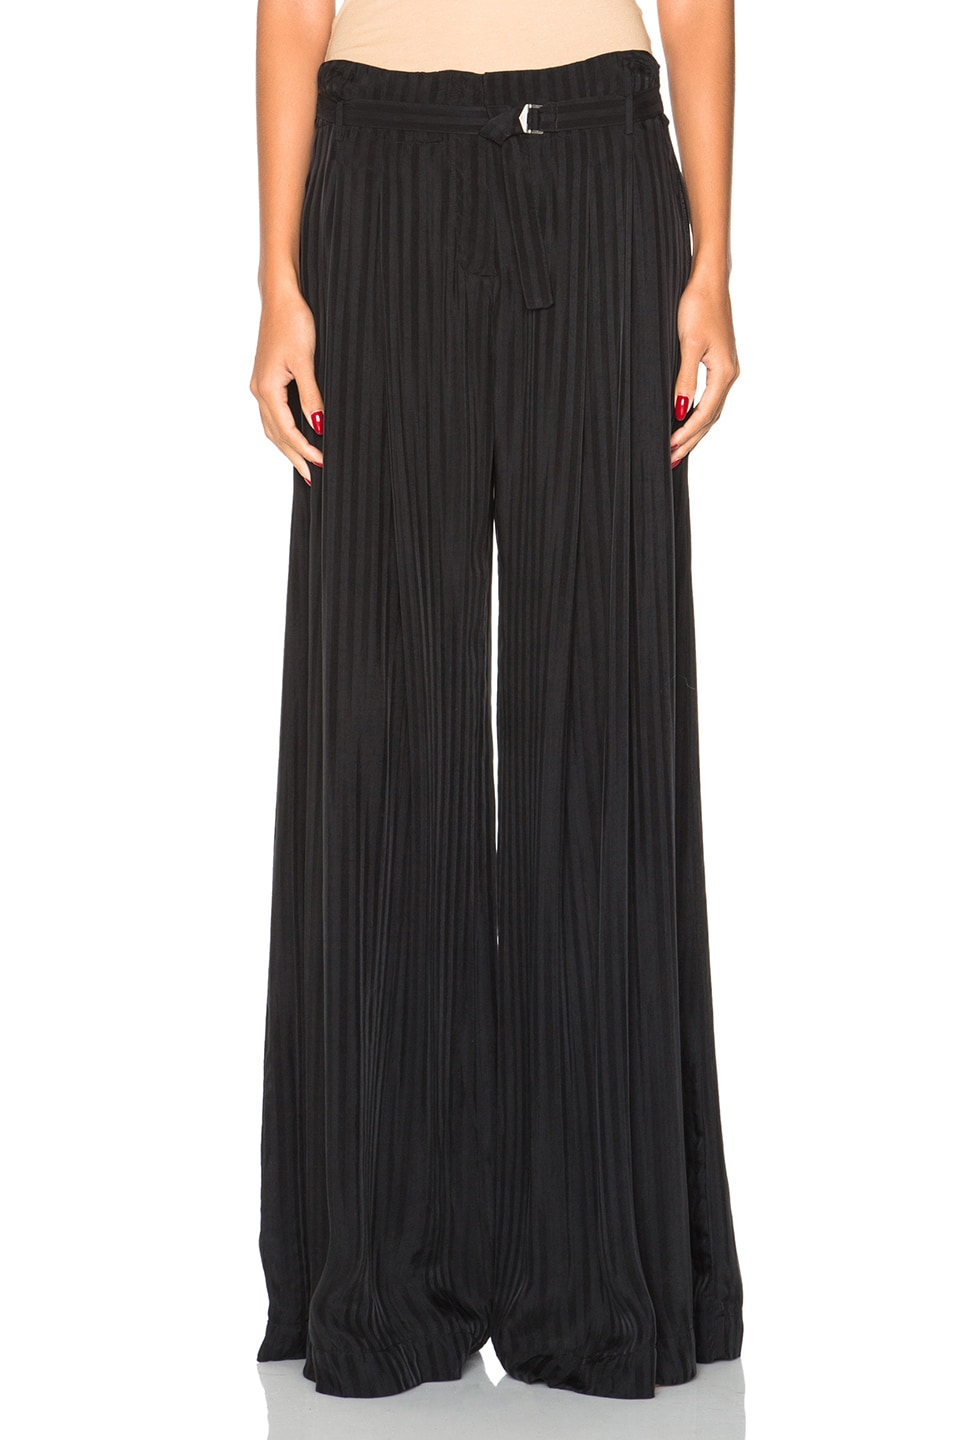 Image 1 of Raquel Allegra Palazzo Pants in Black